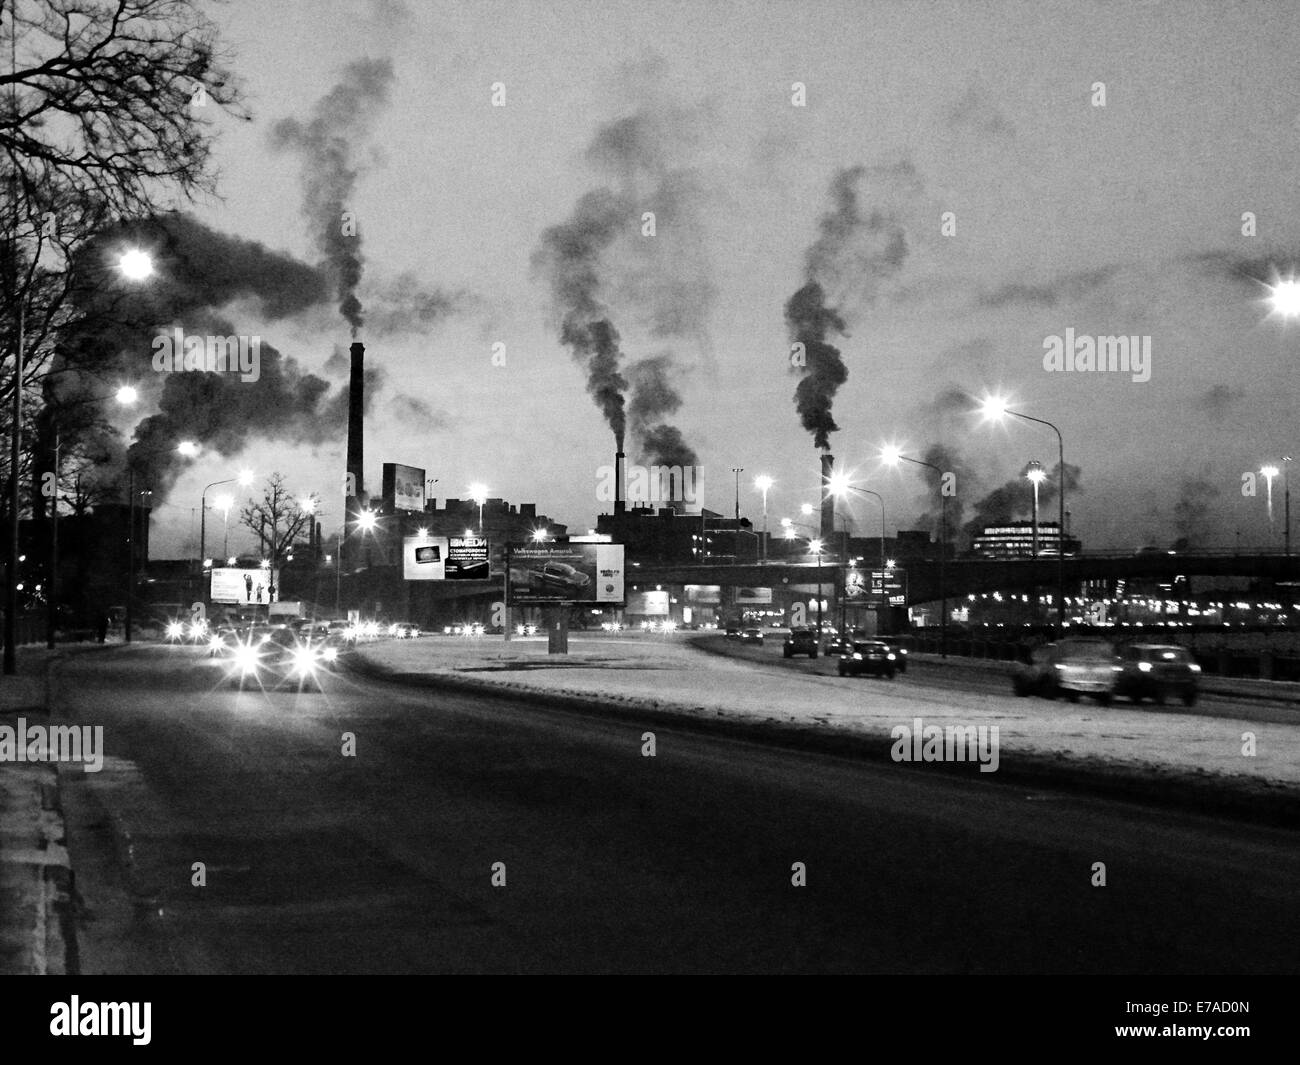 Smoke is coming from the chimneys. Cars - Stock Image